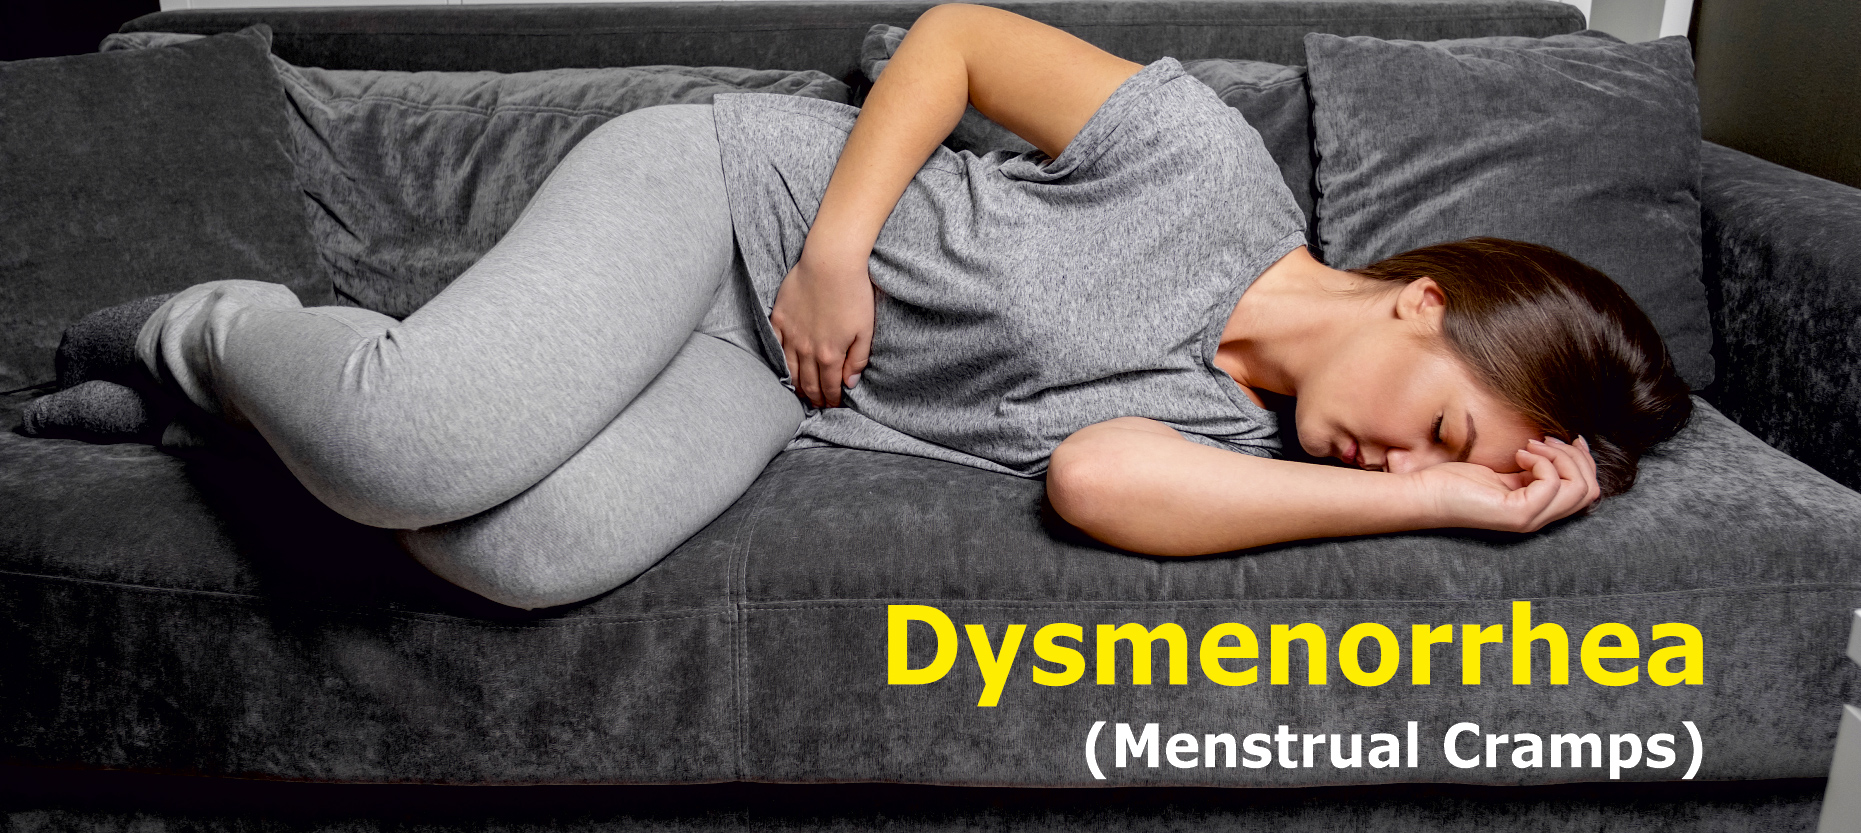 Dysmenorrhea: What Is It? Causes, Symptoms & Treatment